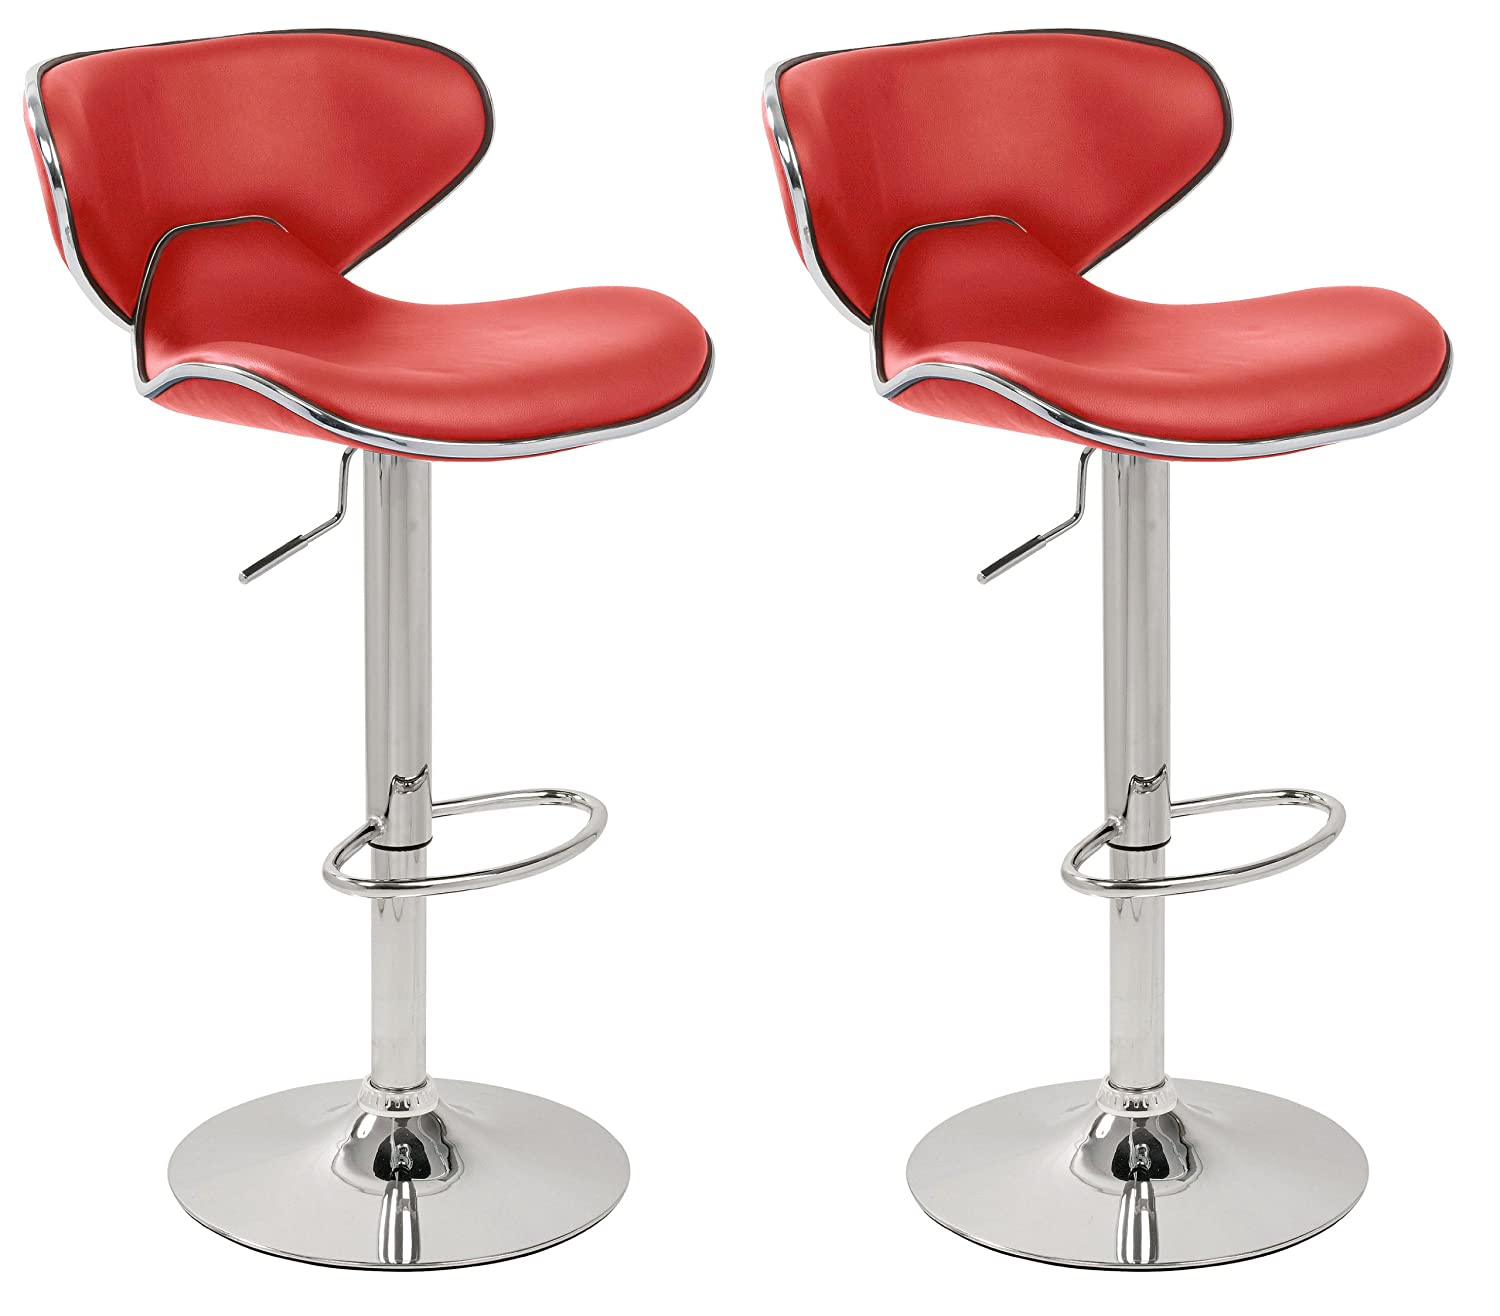 acrylic with leather back wooden and stools furniture big metal inch counter pendant wood retro height swivel w target top ikea backless walmart superlative backs bar stool step red pink cheap